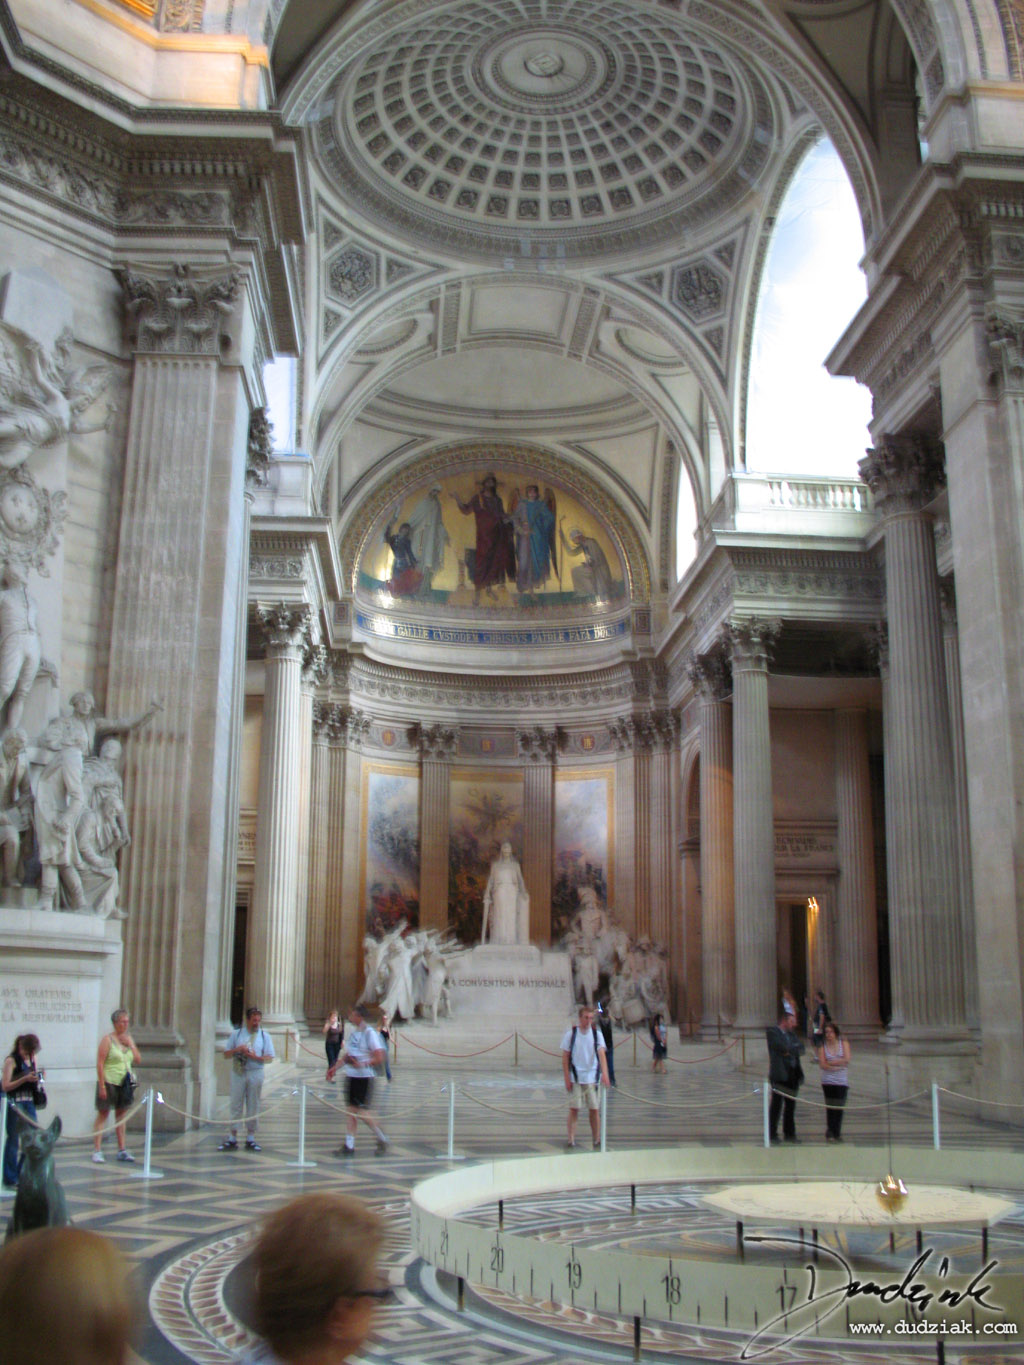 Picture of the Inside of the Paris Pantheon.